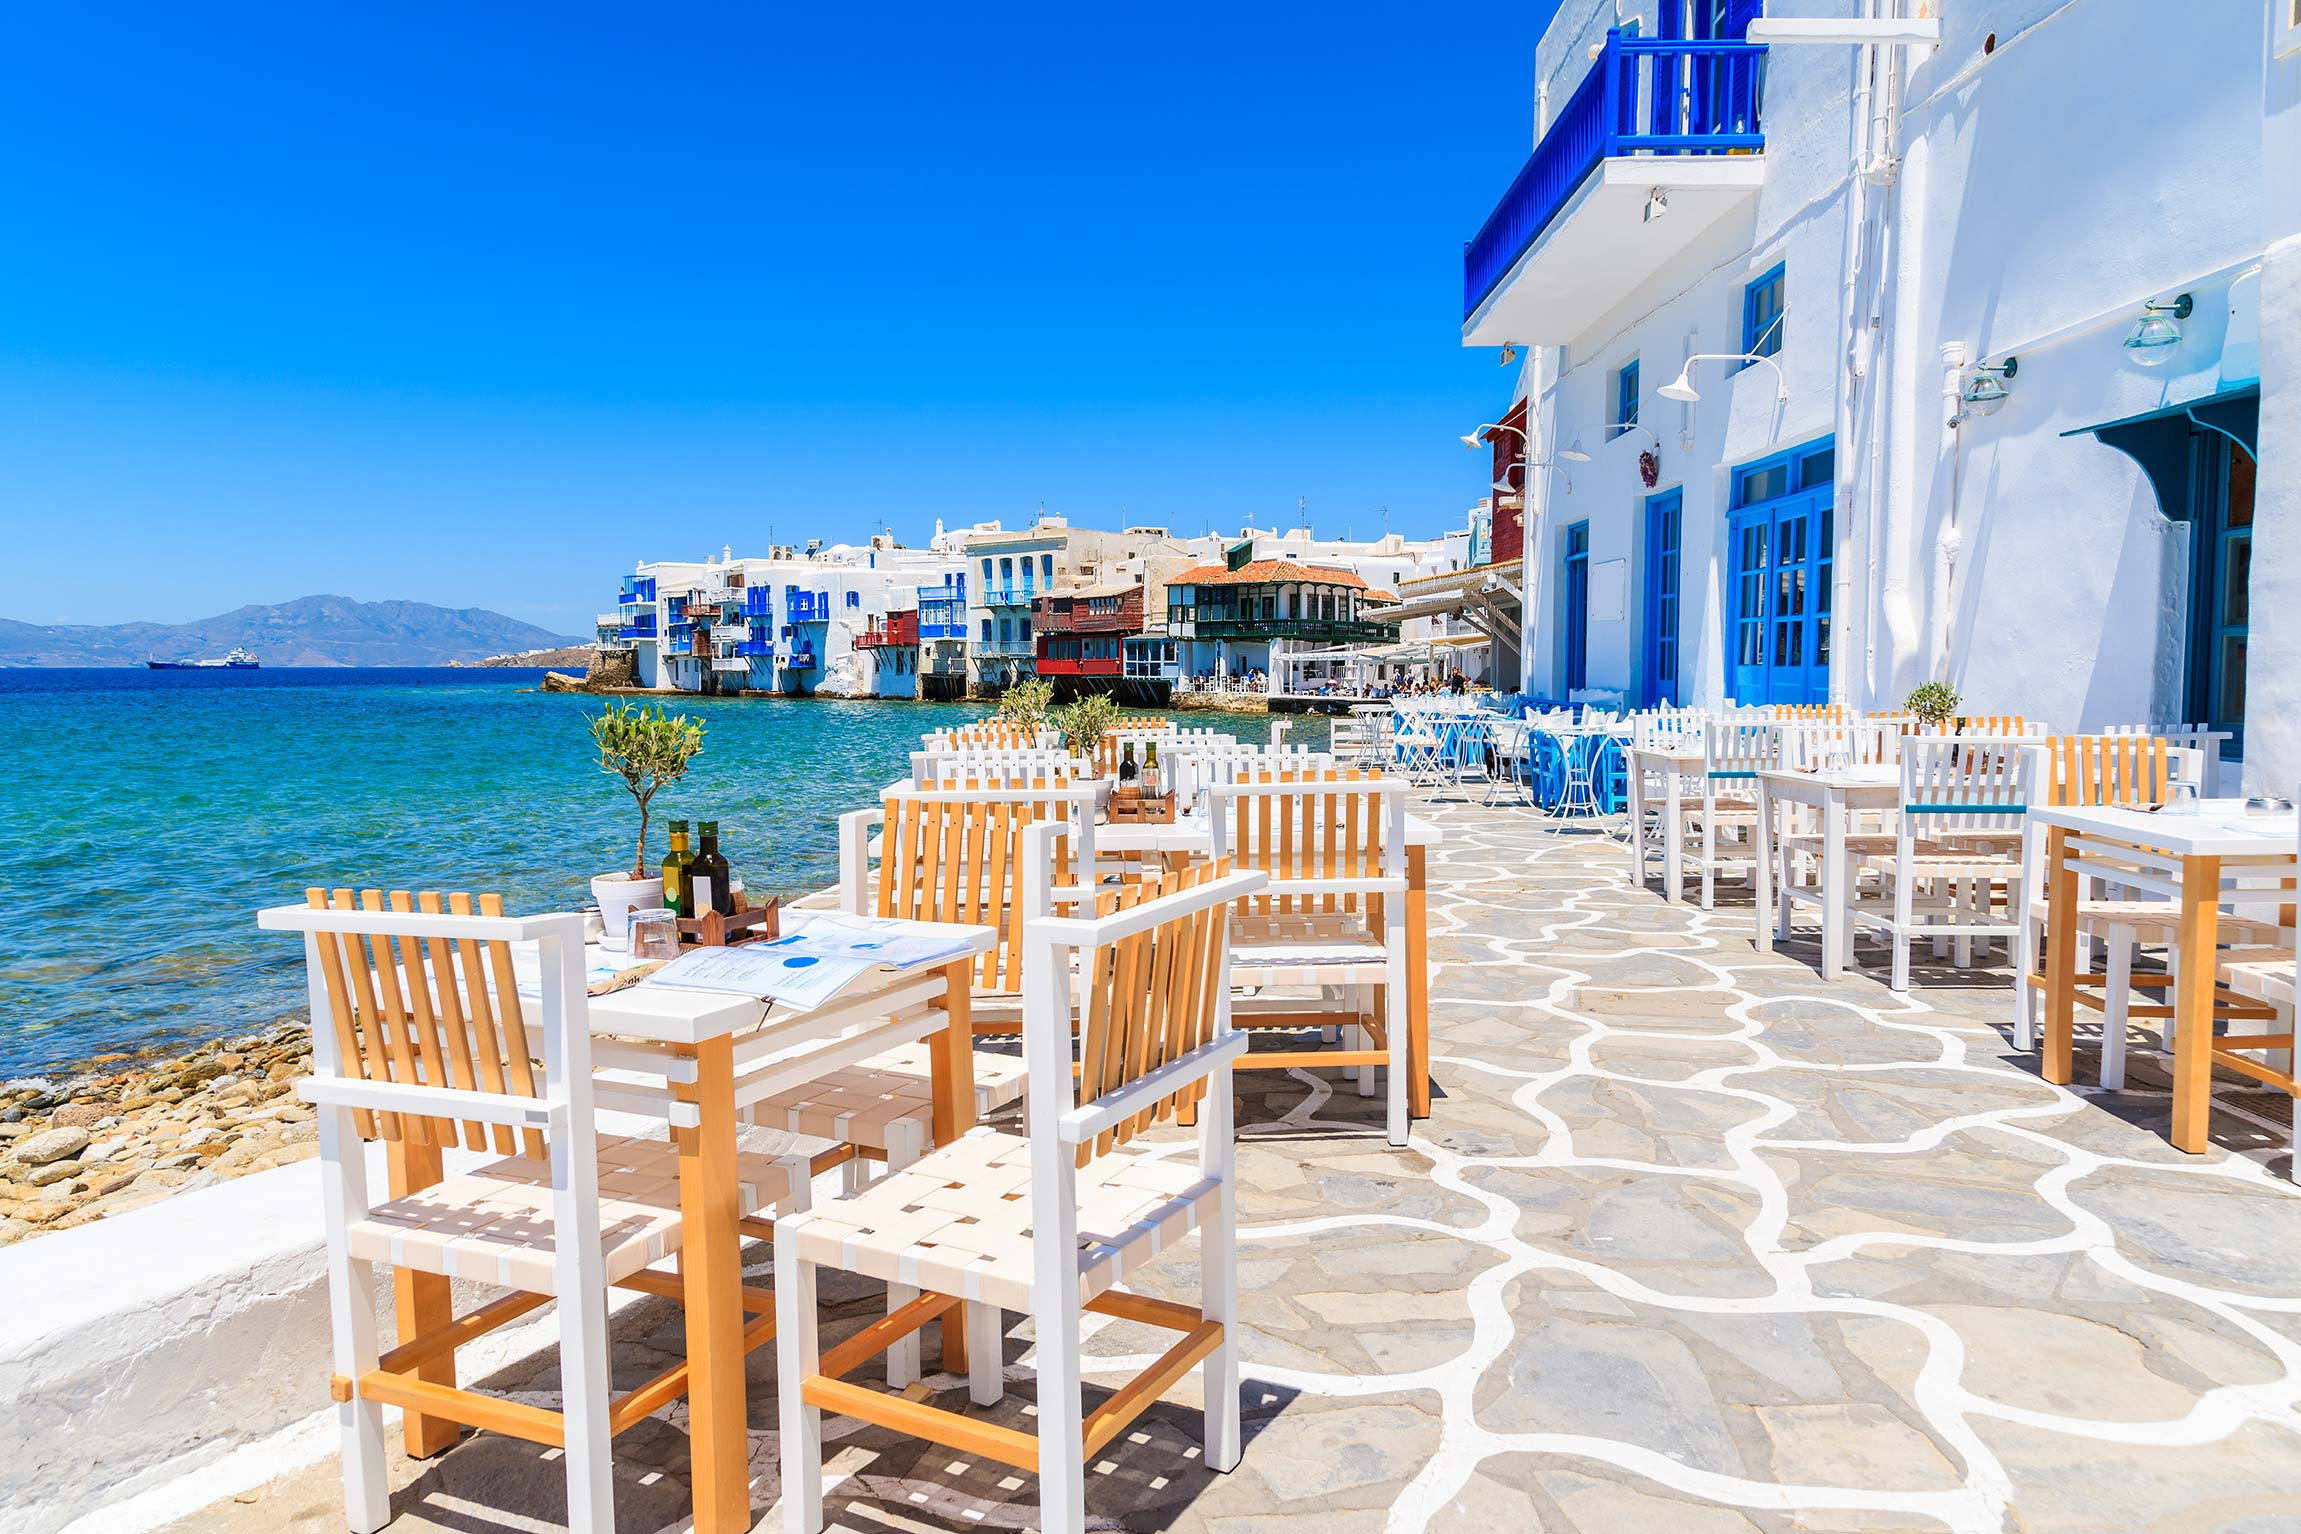 Divertimento in Grecia: Mykonos